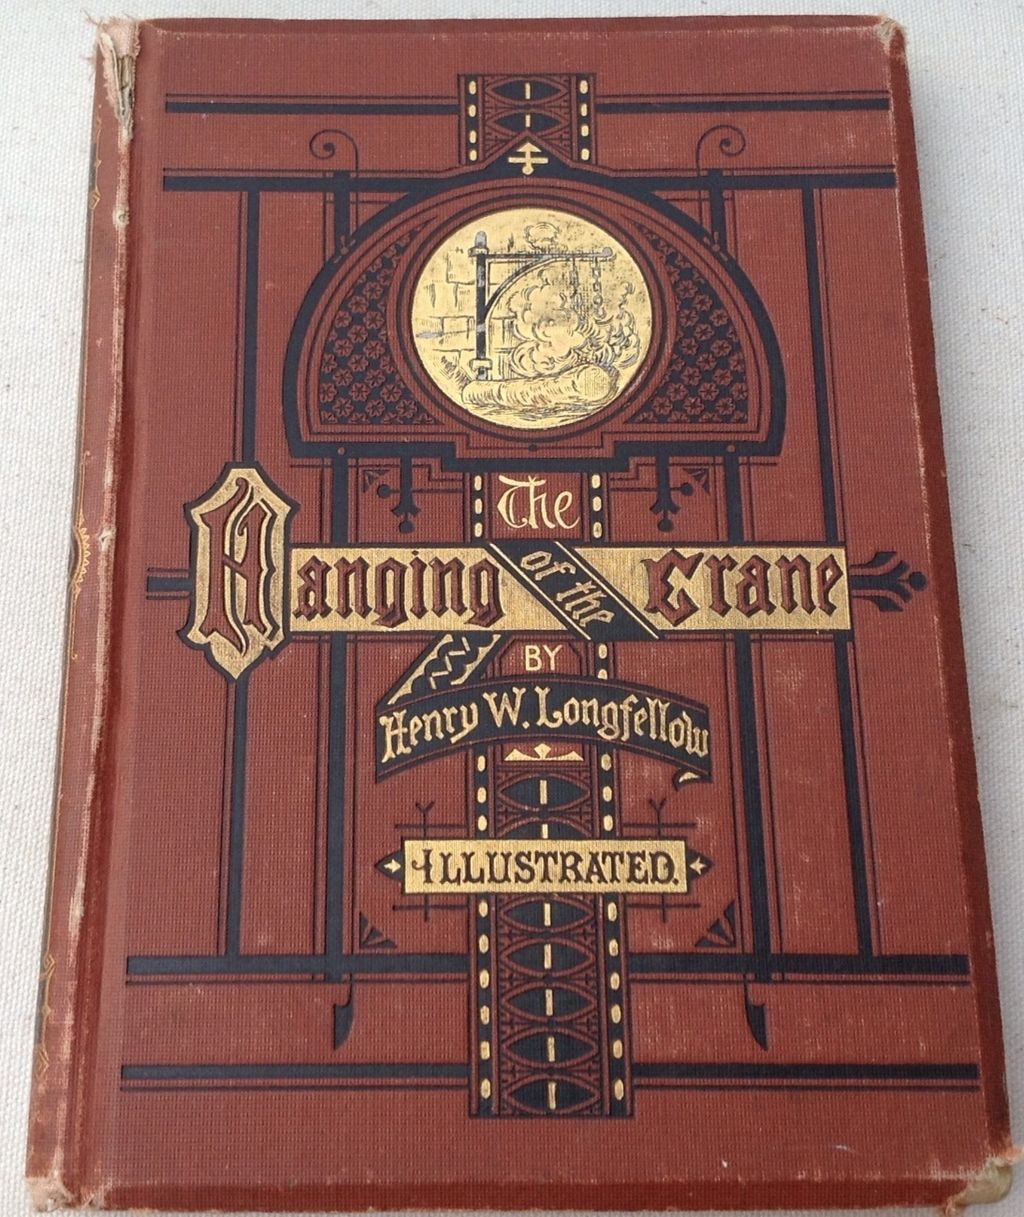 1876 Hanging Of The Crane By Henry Wadsworth Longfellow